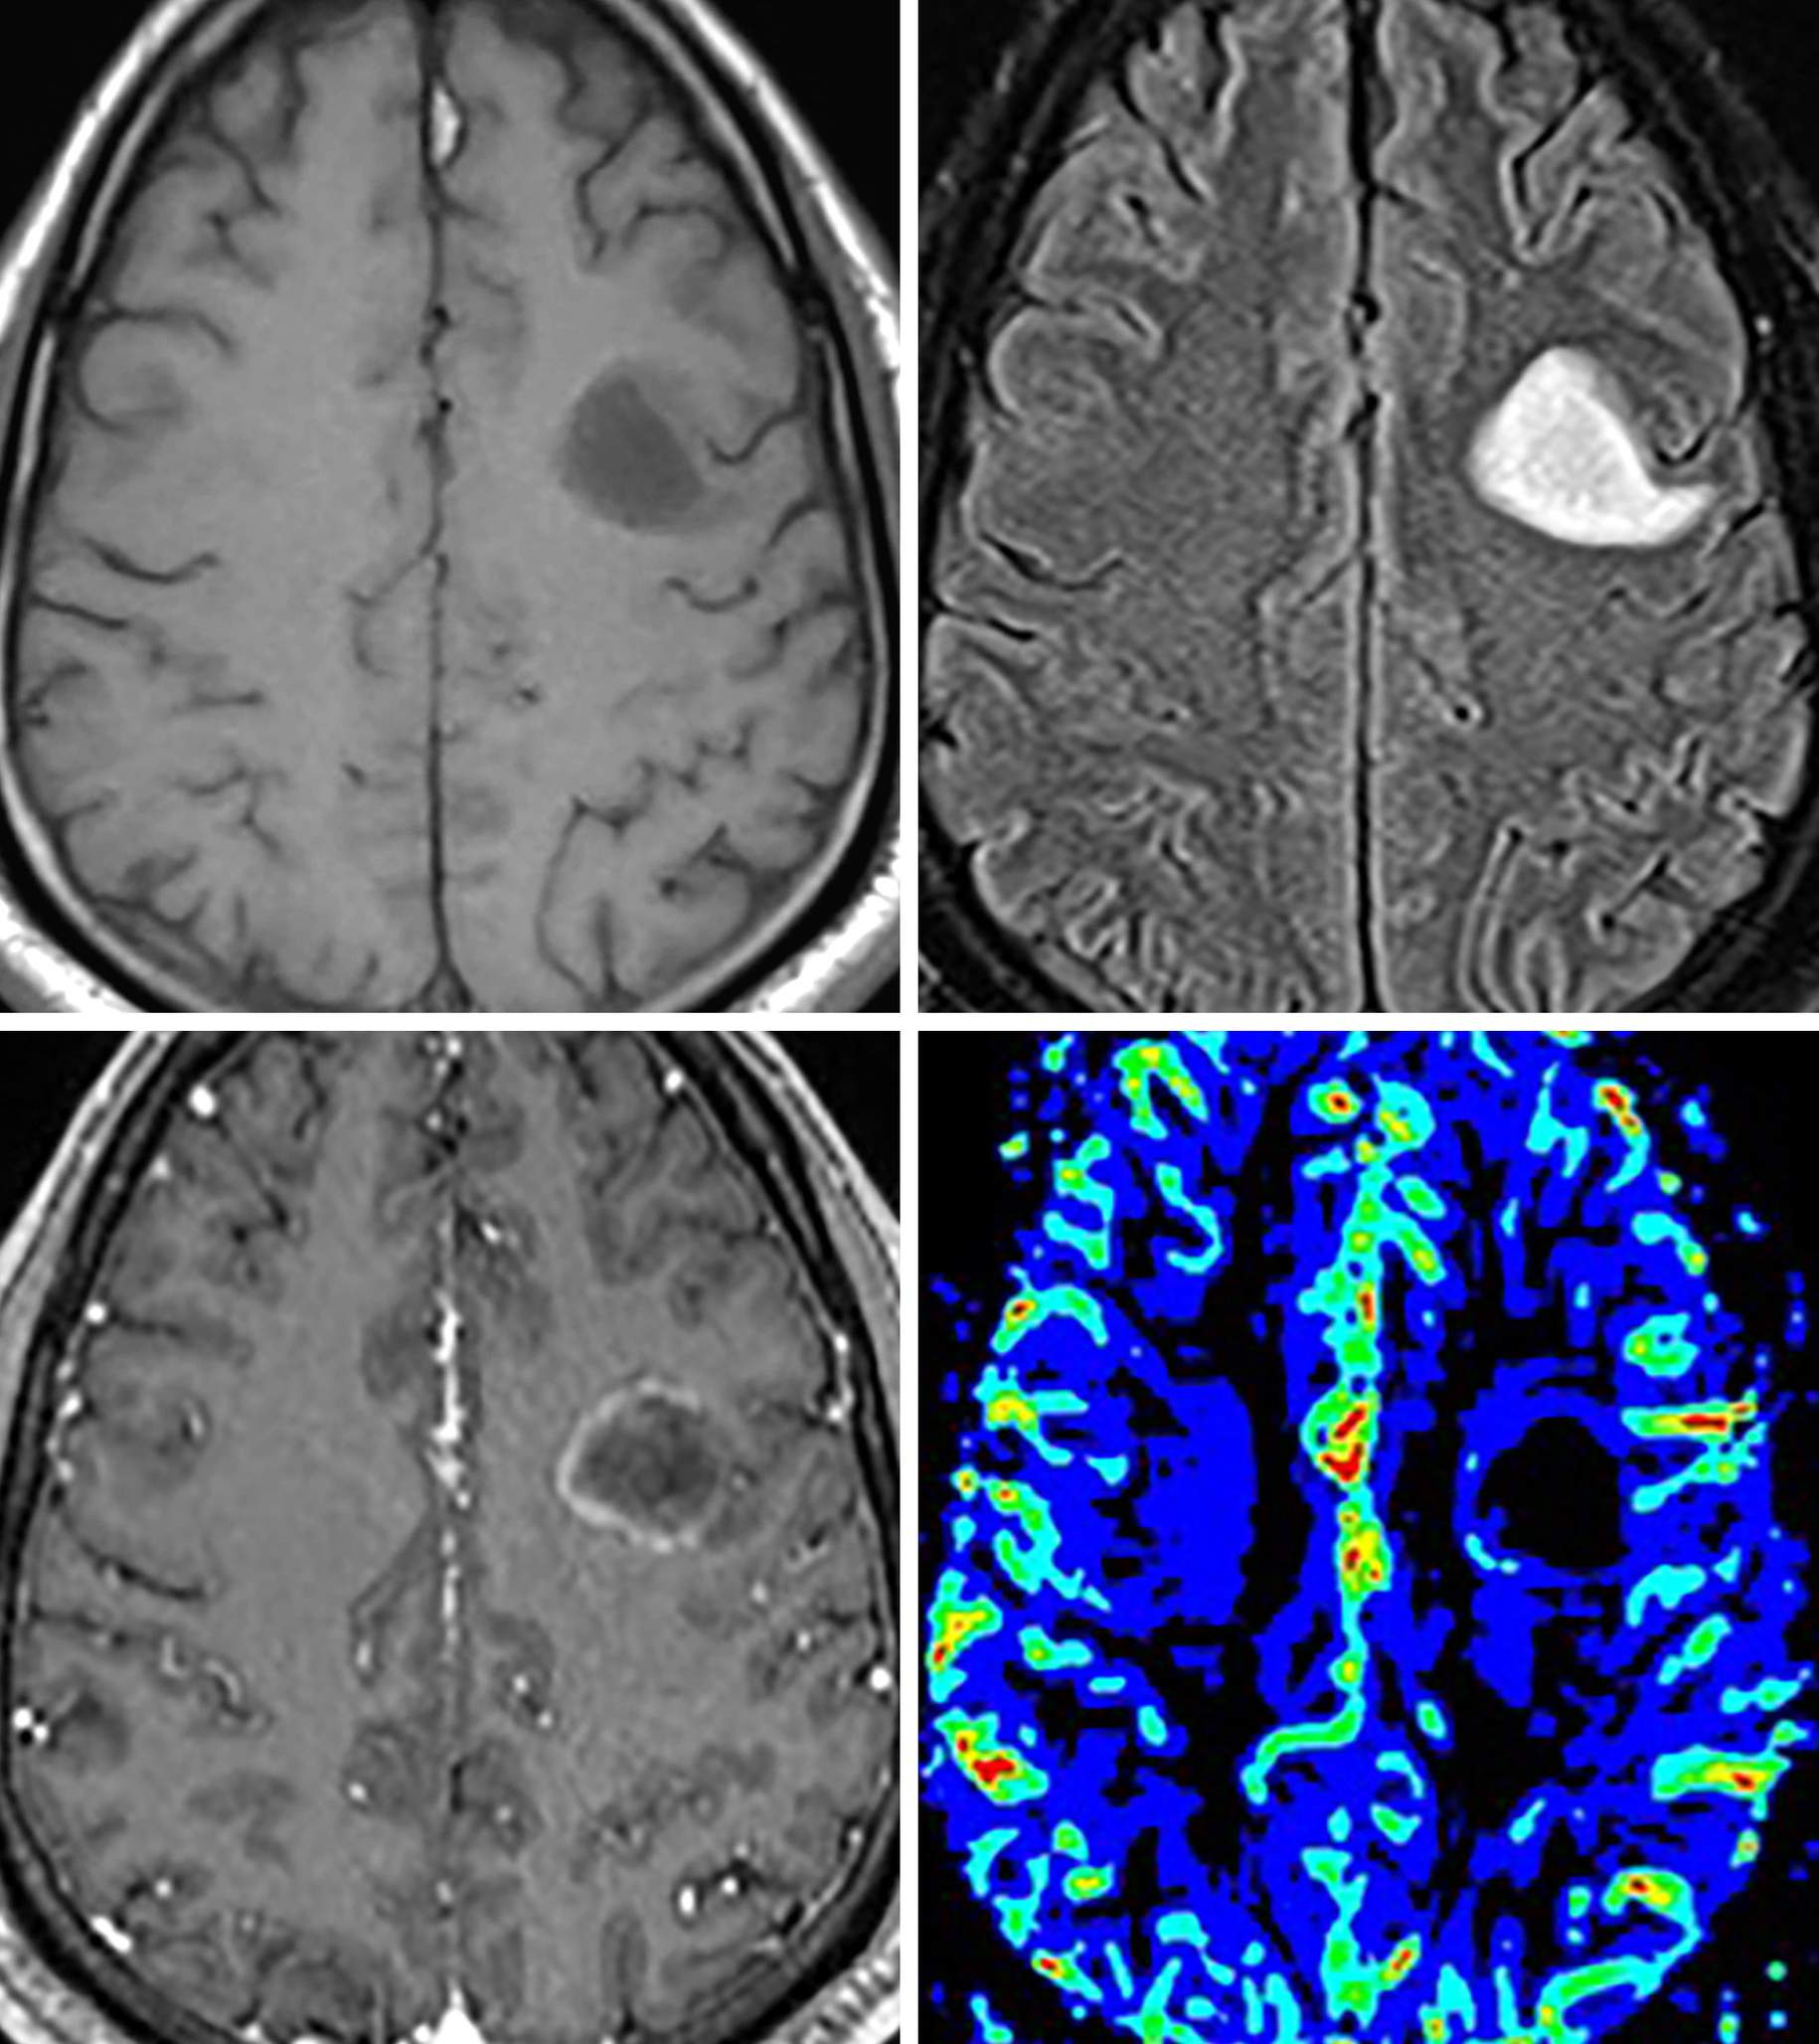 Figure 1: T1 hypointense (top row left) oval, subcortical lesion with corresponding FLAIR hyperintense signal (top row right) and faint rim of incomplete (horse-shoe) enhancement (bottom row left). Notice the mildly increased cerebral blood volume on MR perfusion imaging (bottom row right) along the medial margin. The incomplete rim of enhancement and low T1 signal is fairly classic for a tumefactive, demyelinating lesion. While perfusion can be mildly increased along the periphery of the lesion, it is often much less than would be expected with a high grade glioma.